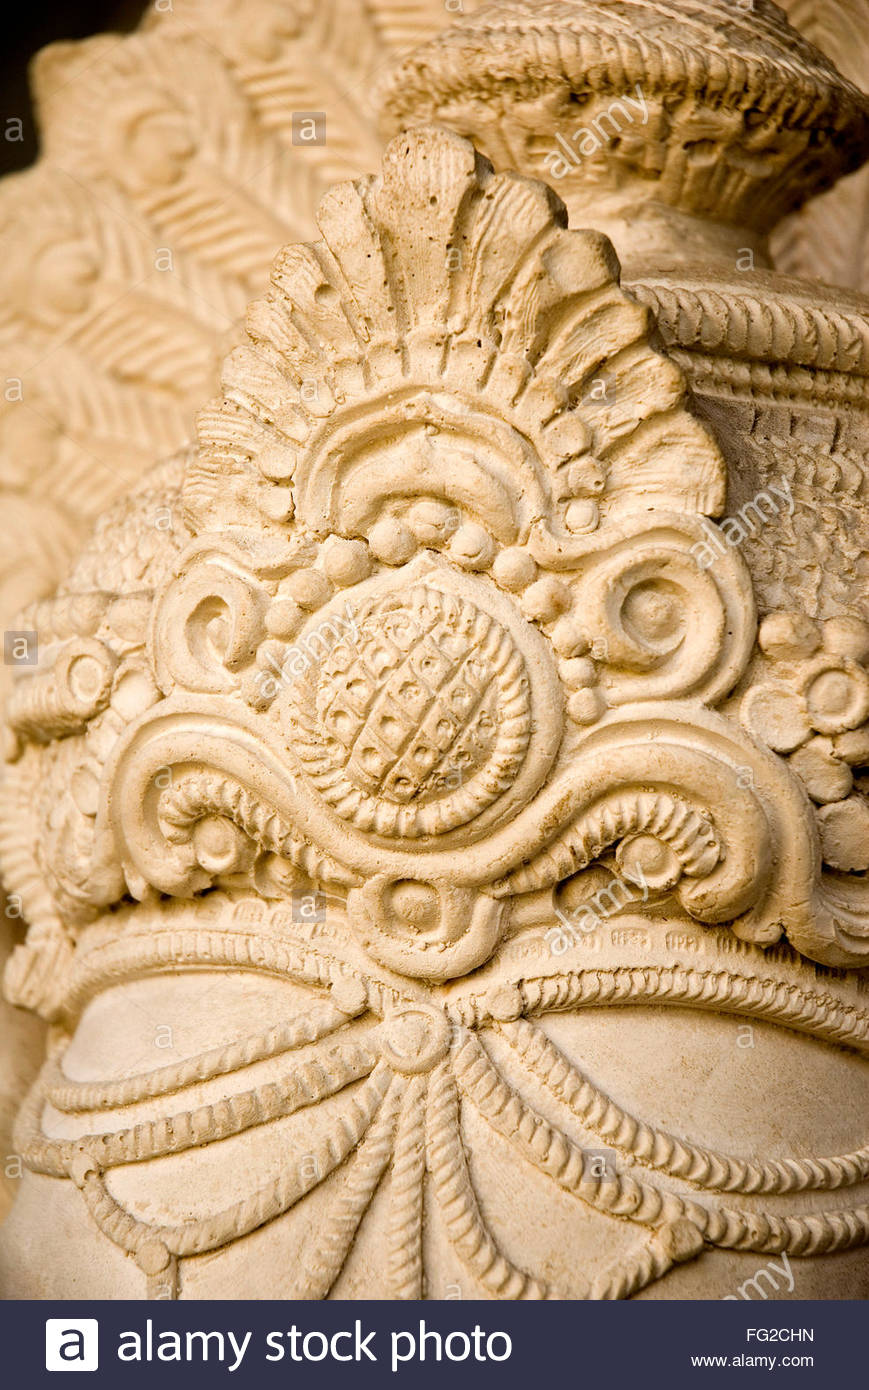 Plaster Of Paris Sculpture Stock Photos & Plaster Of Paris Sculpture ...